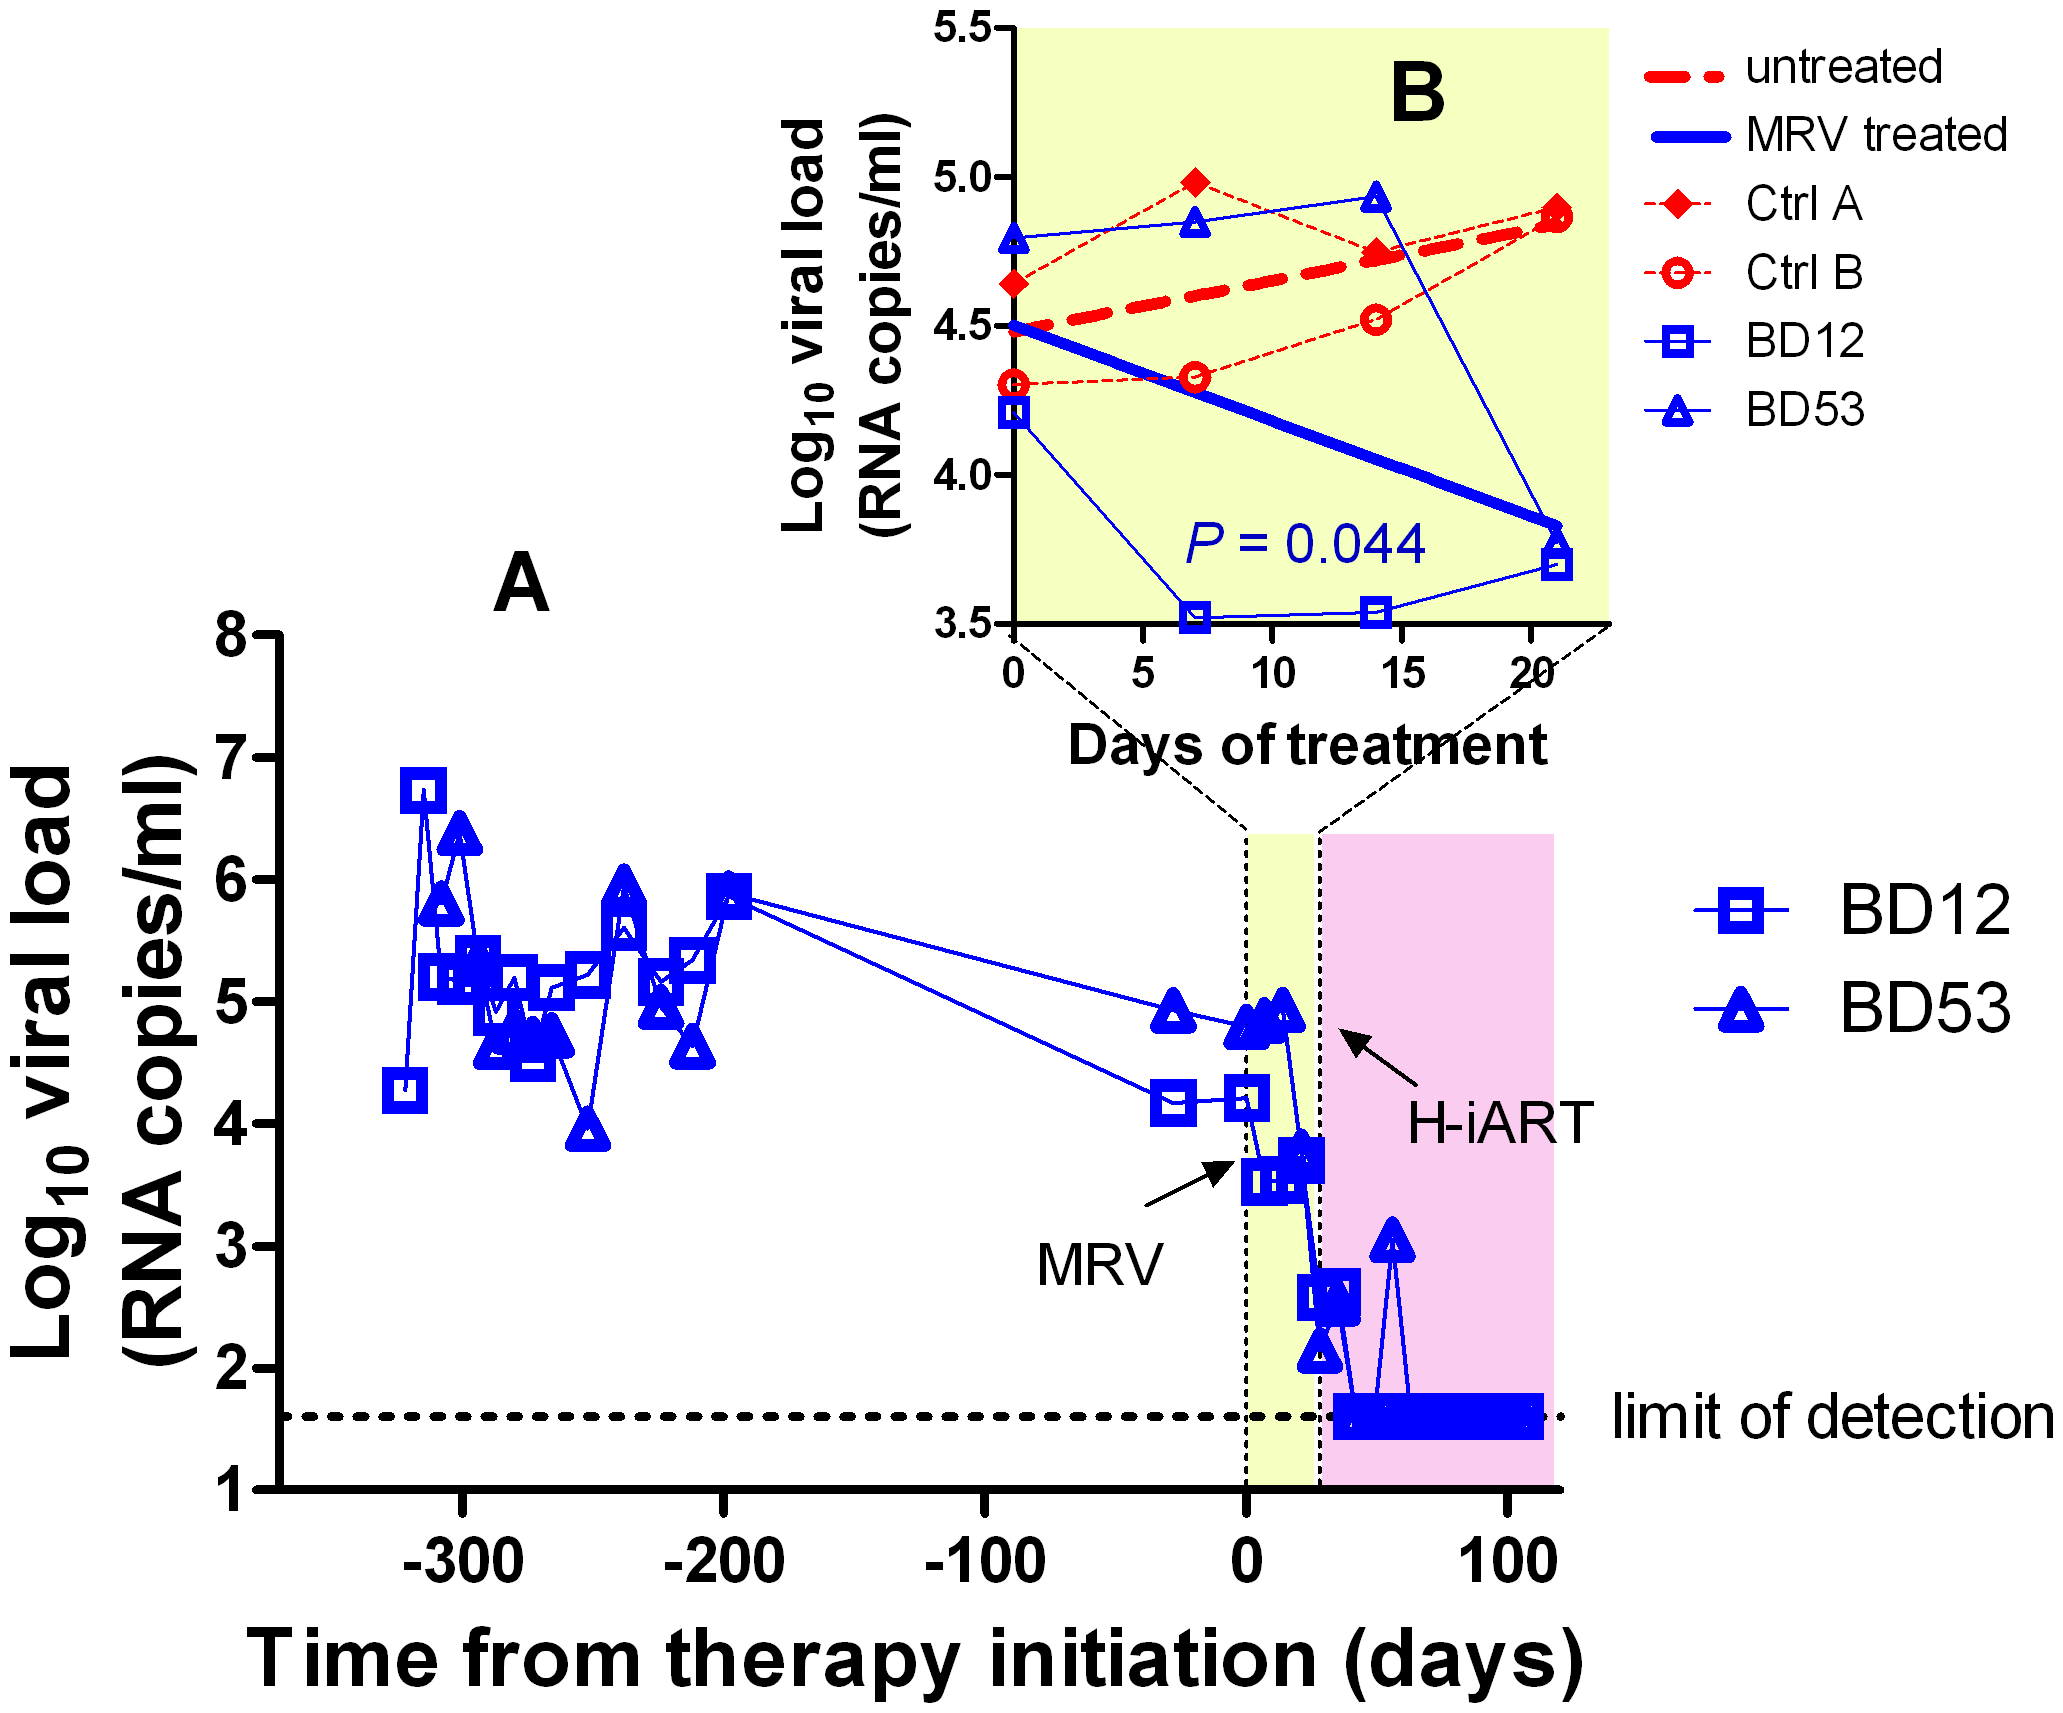 Ritonavir-boosted MRV (MRV/r) is able to decrease viremia <i>in vivo</i>.